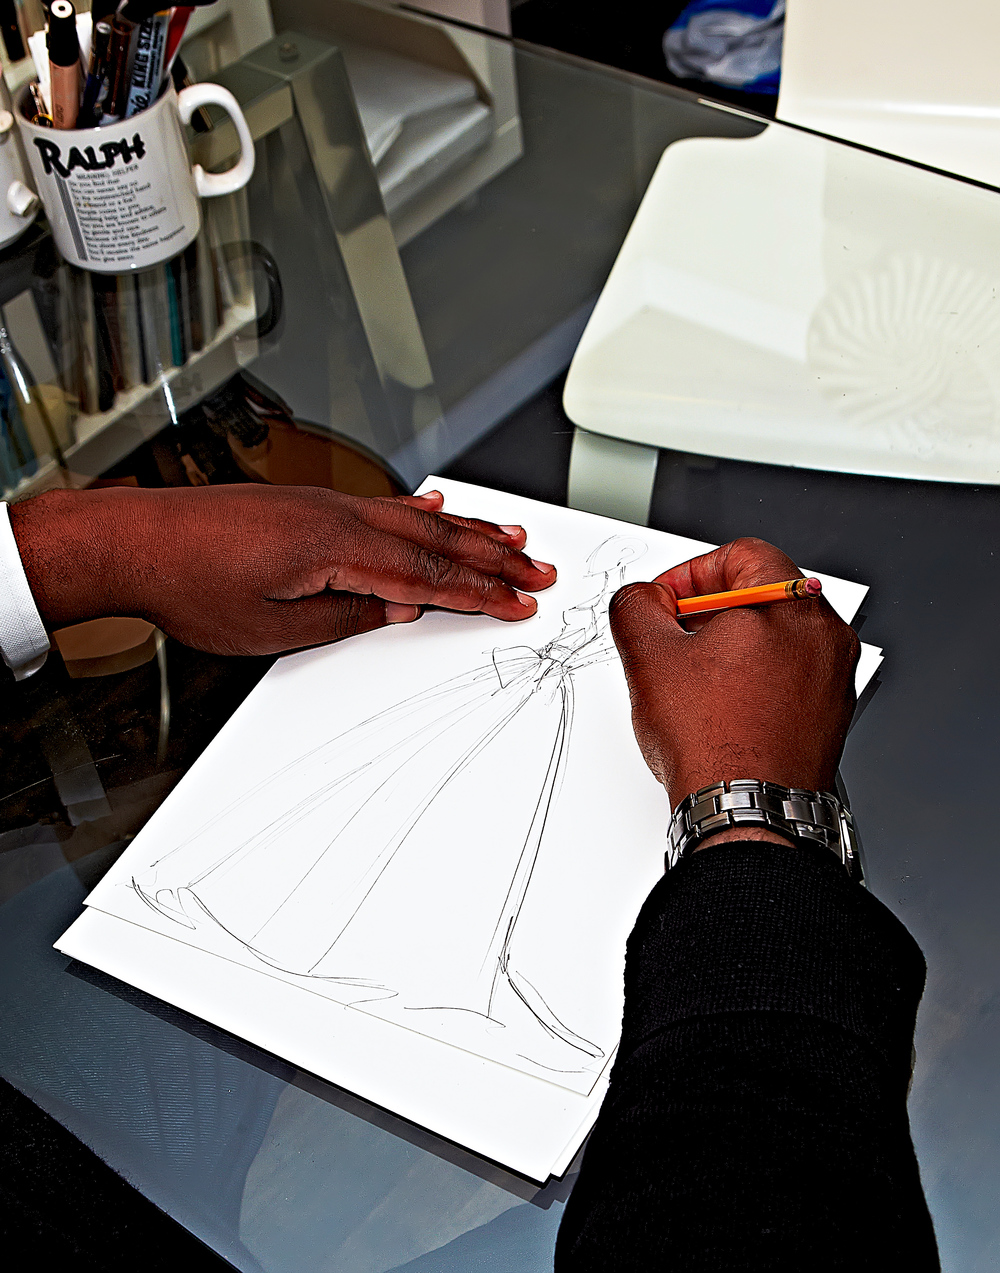 Jean-Ralph Thurin sketching wedding dress